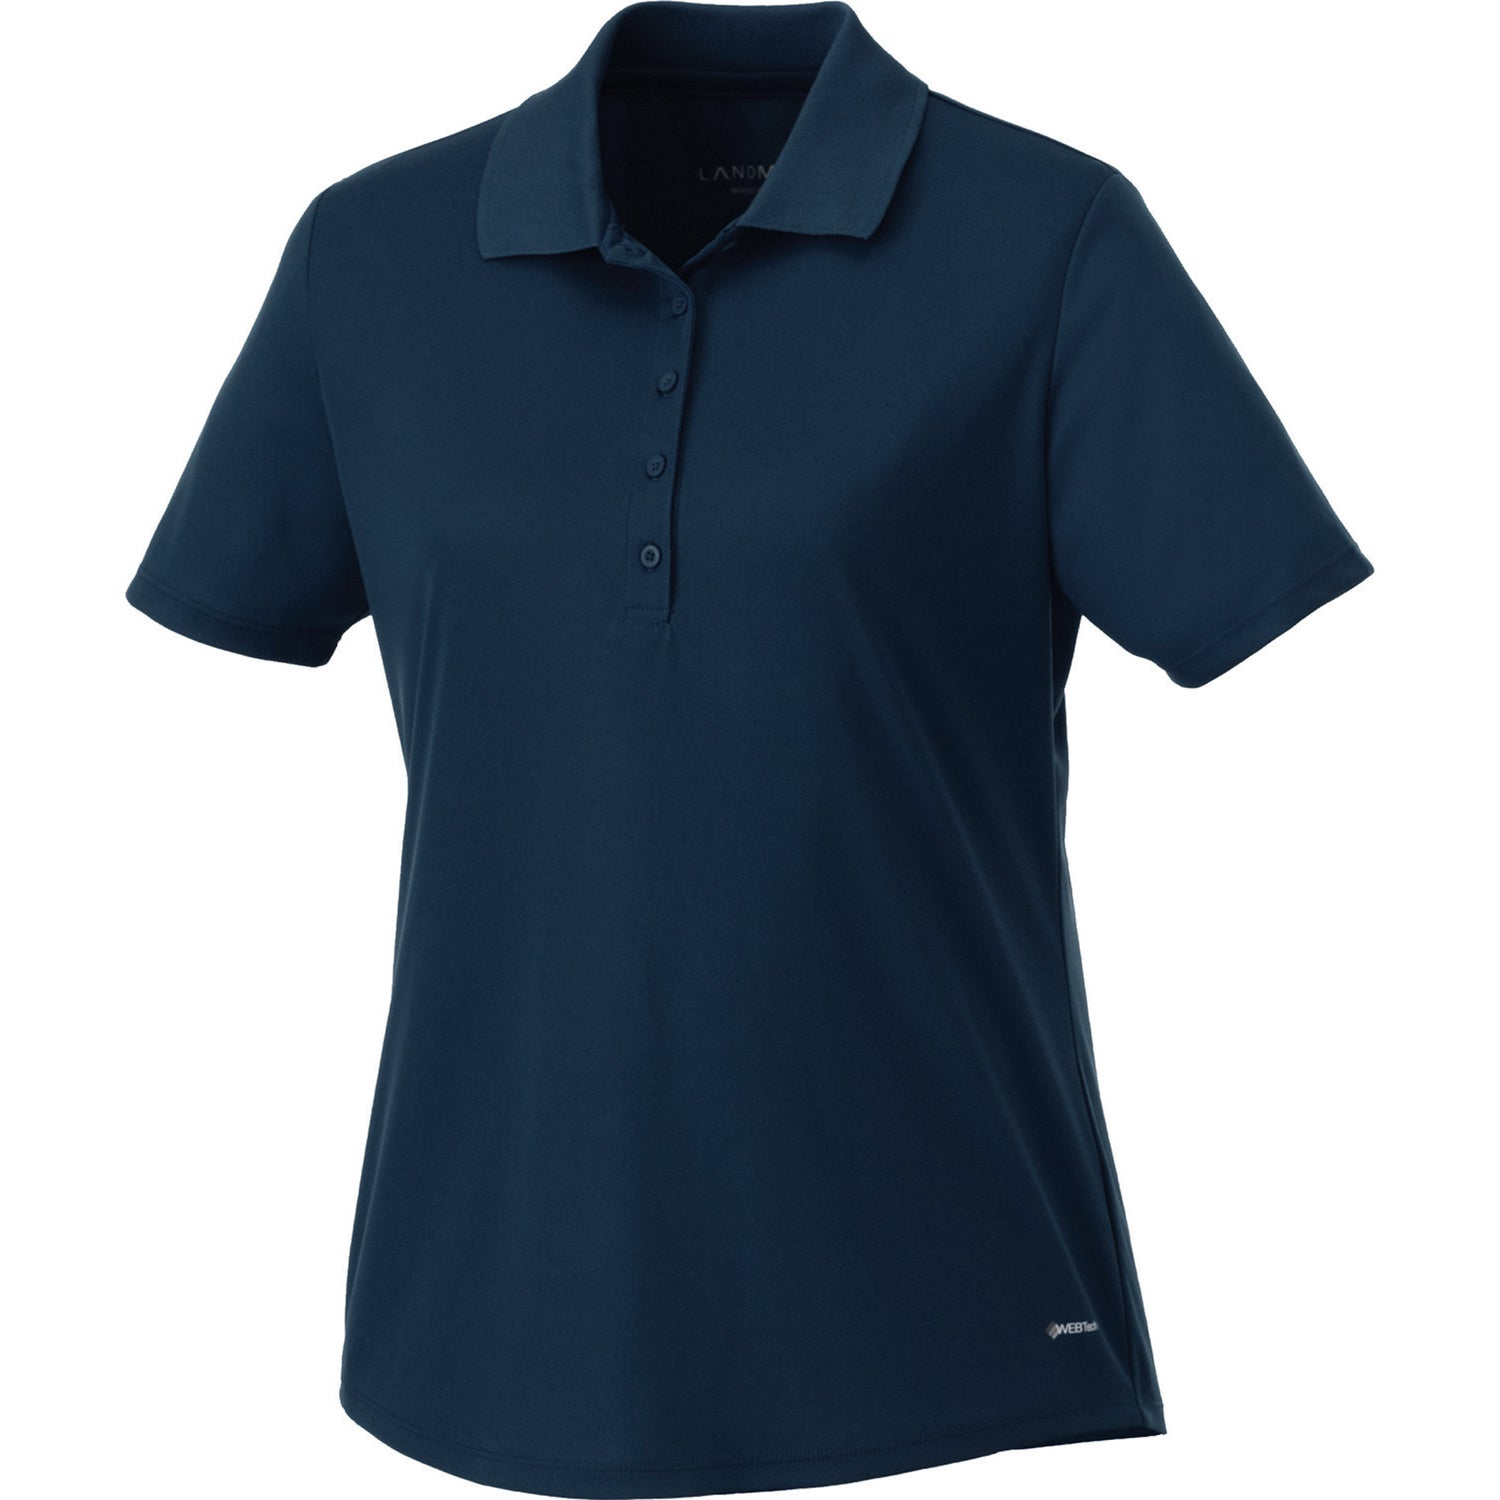 Edge short sleeve polo shirt by trimark women 39 s for Quality polo shirts with company logo